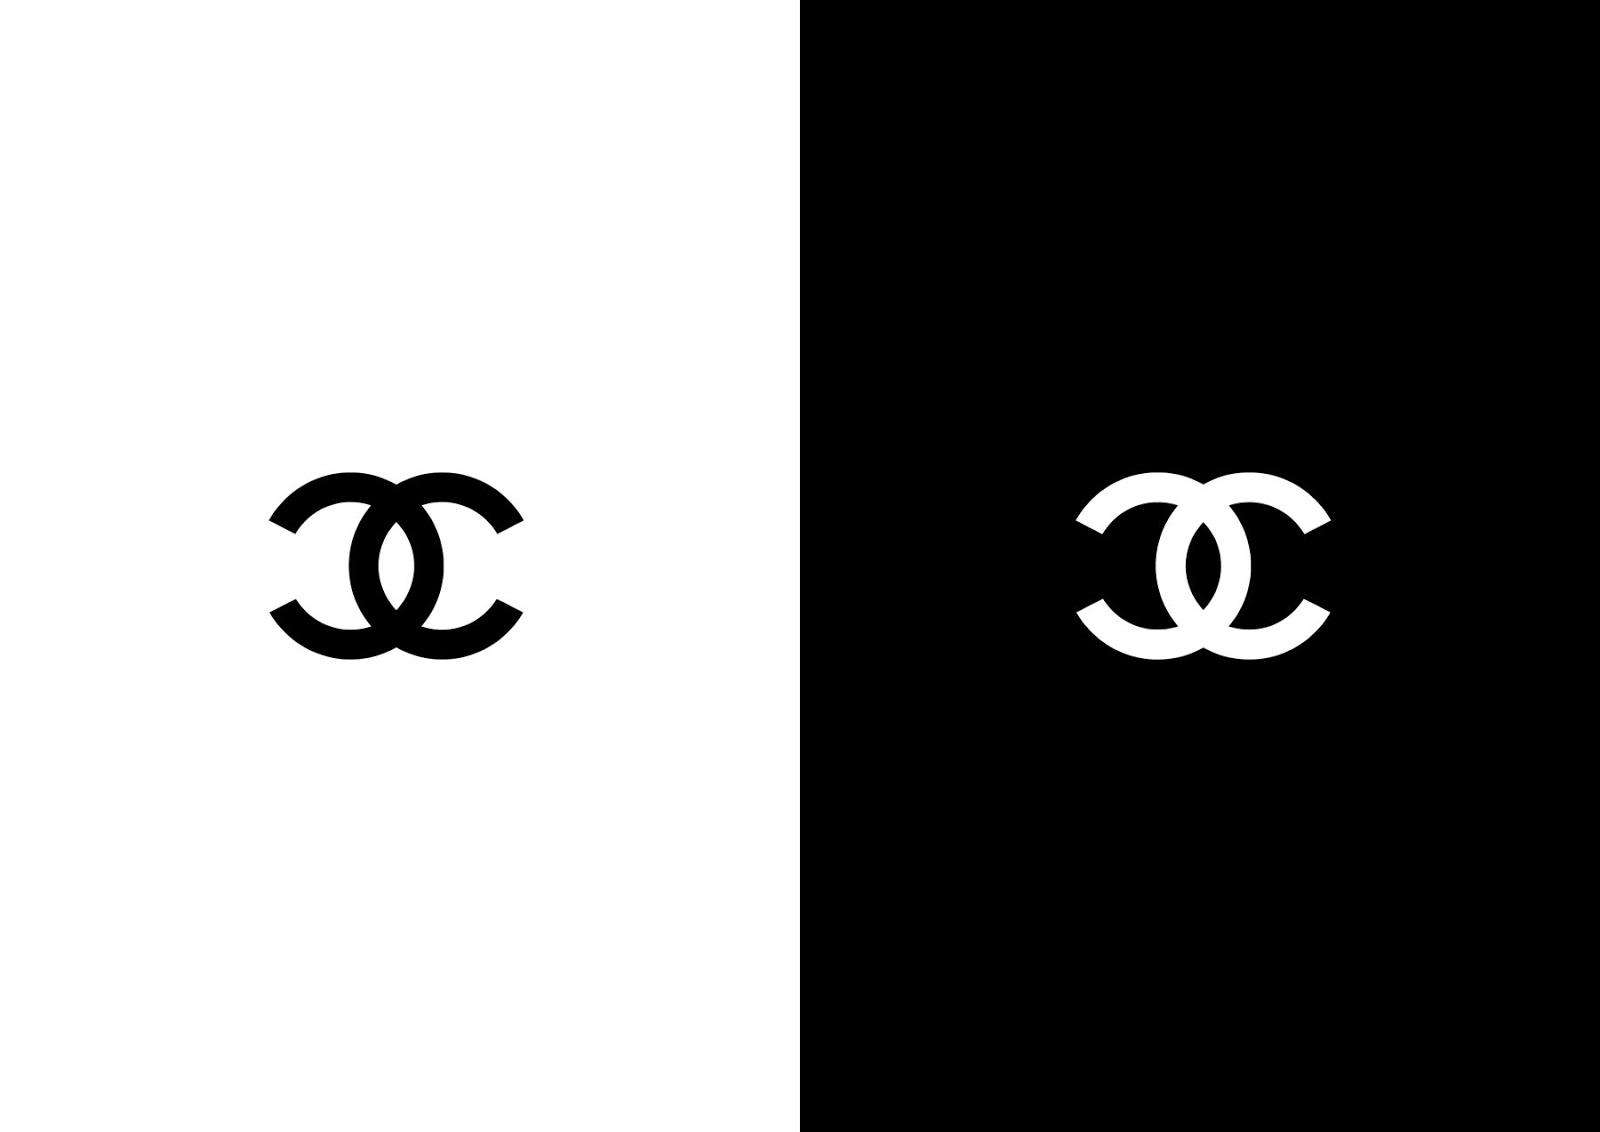 Iphone wallpaper tumblr chanel - Post 6 Brand Chanel